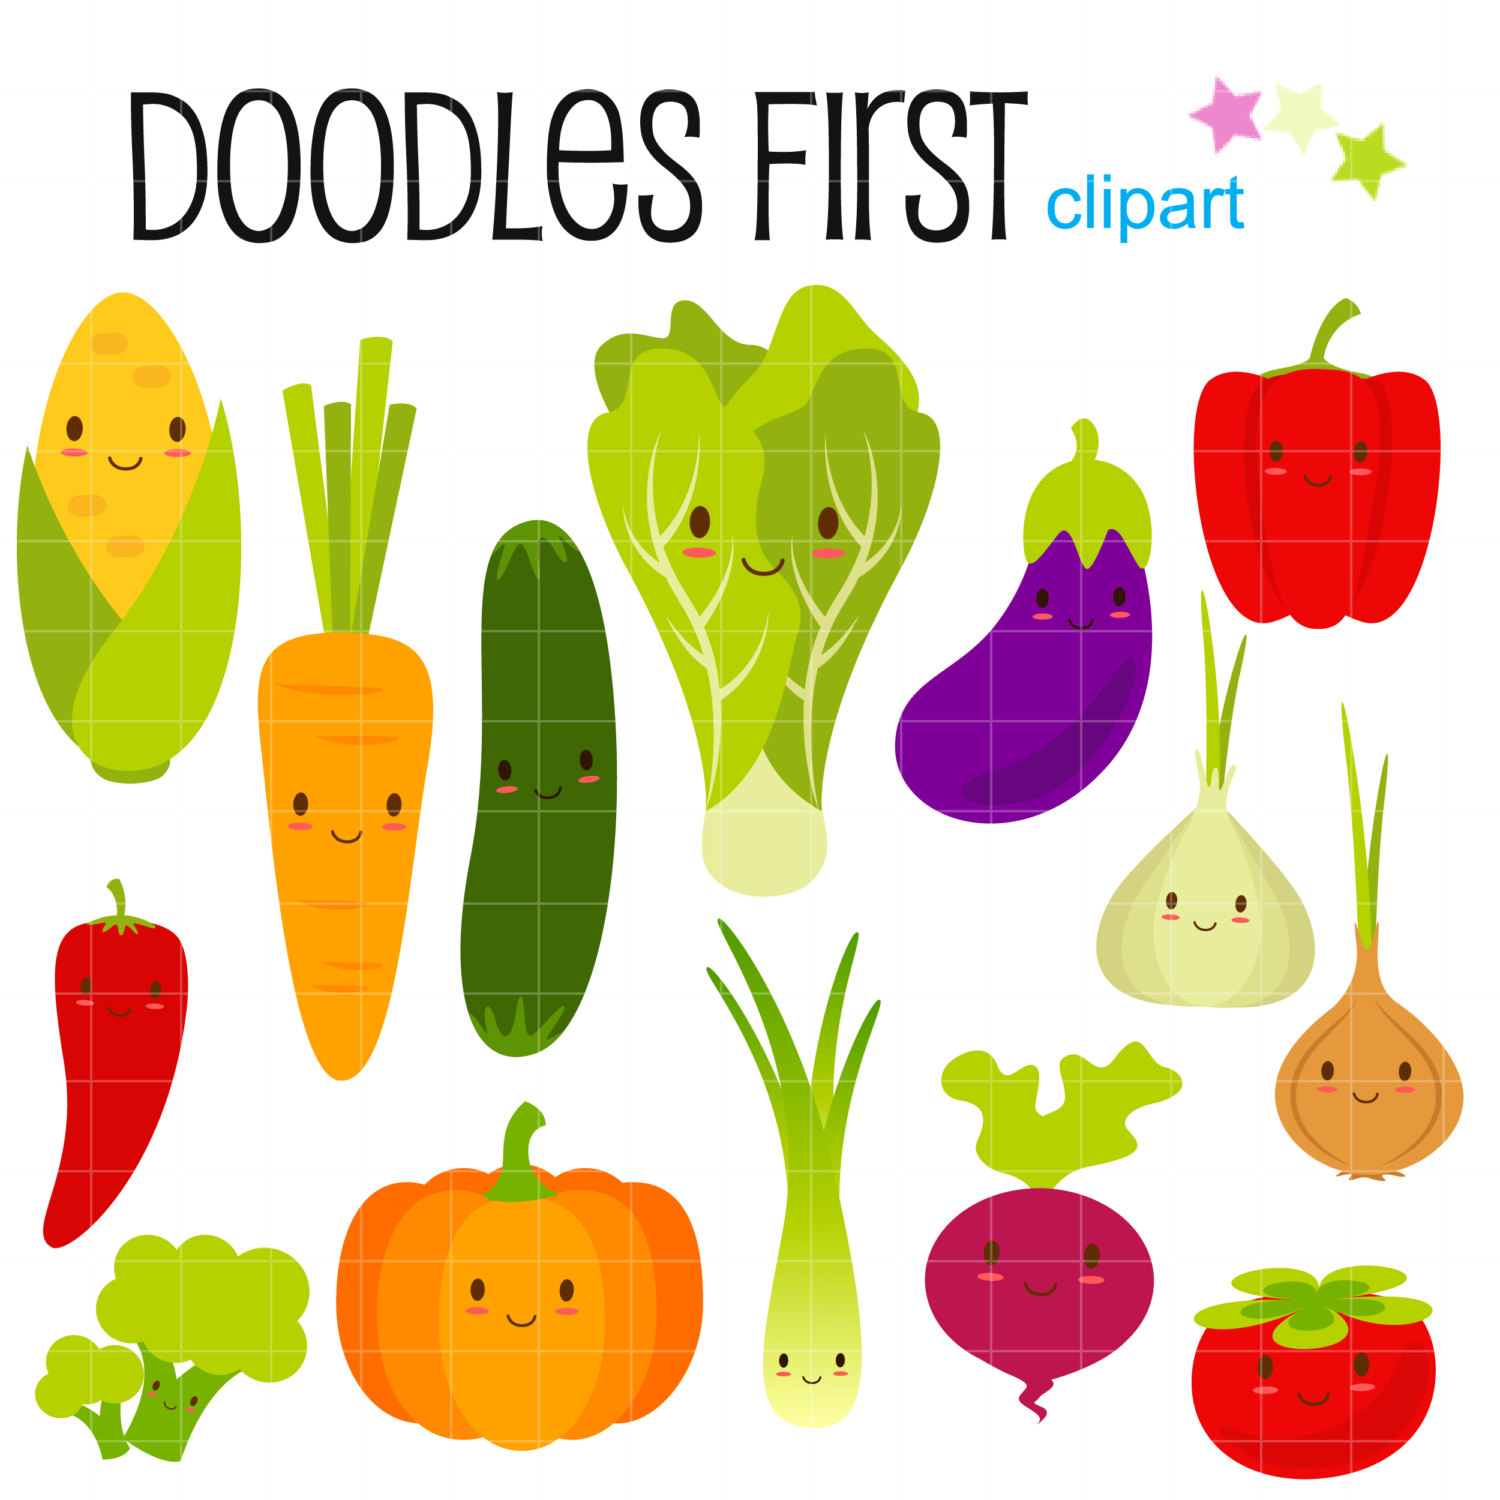 Vegetable clipart #1, Download drawings